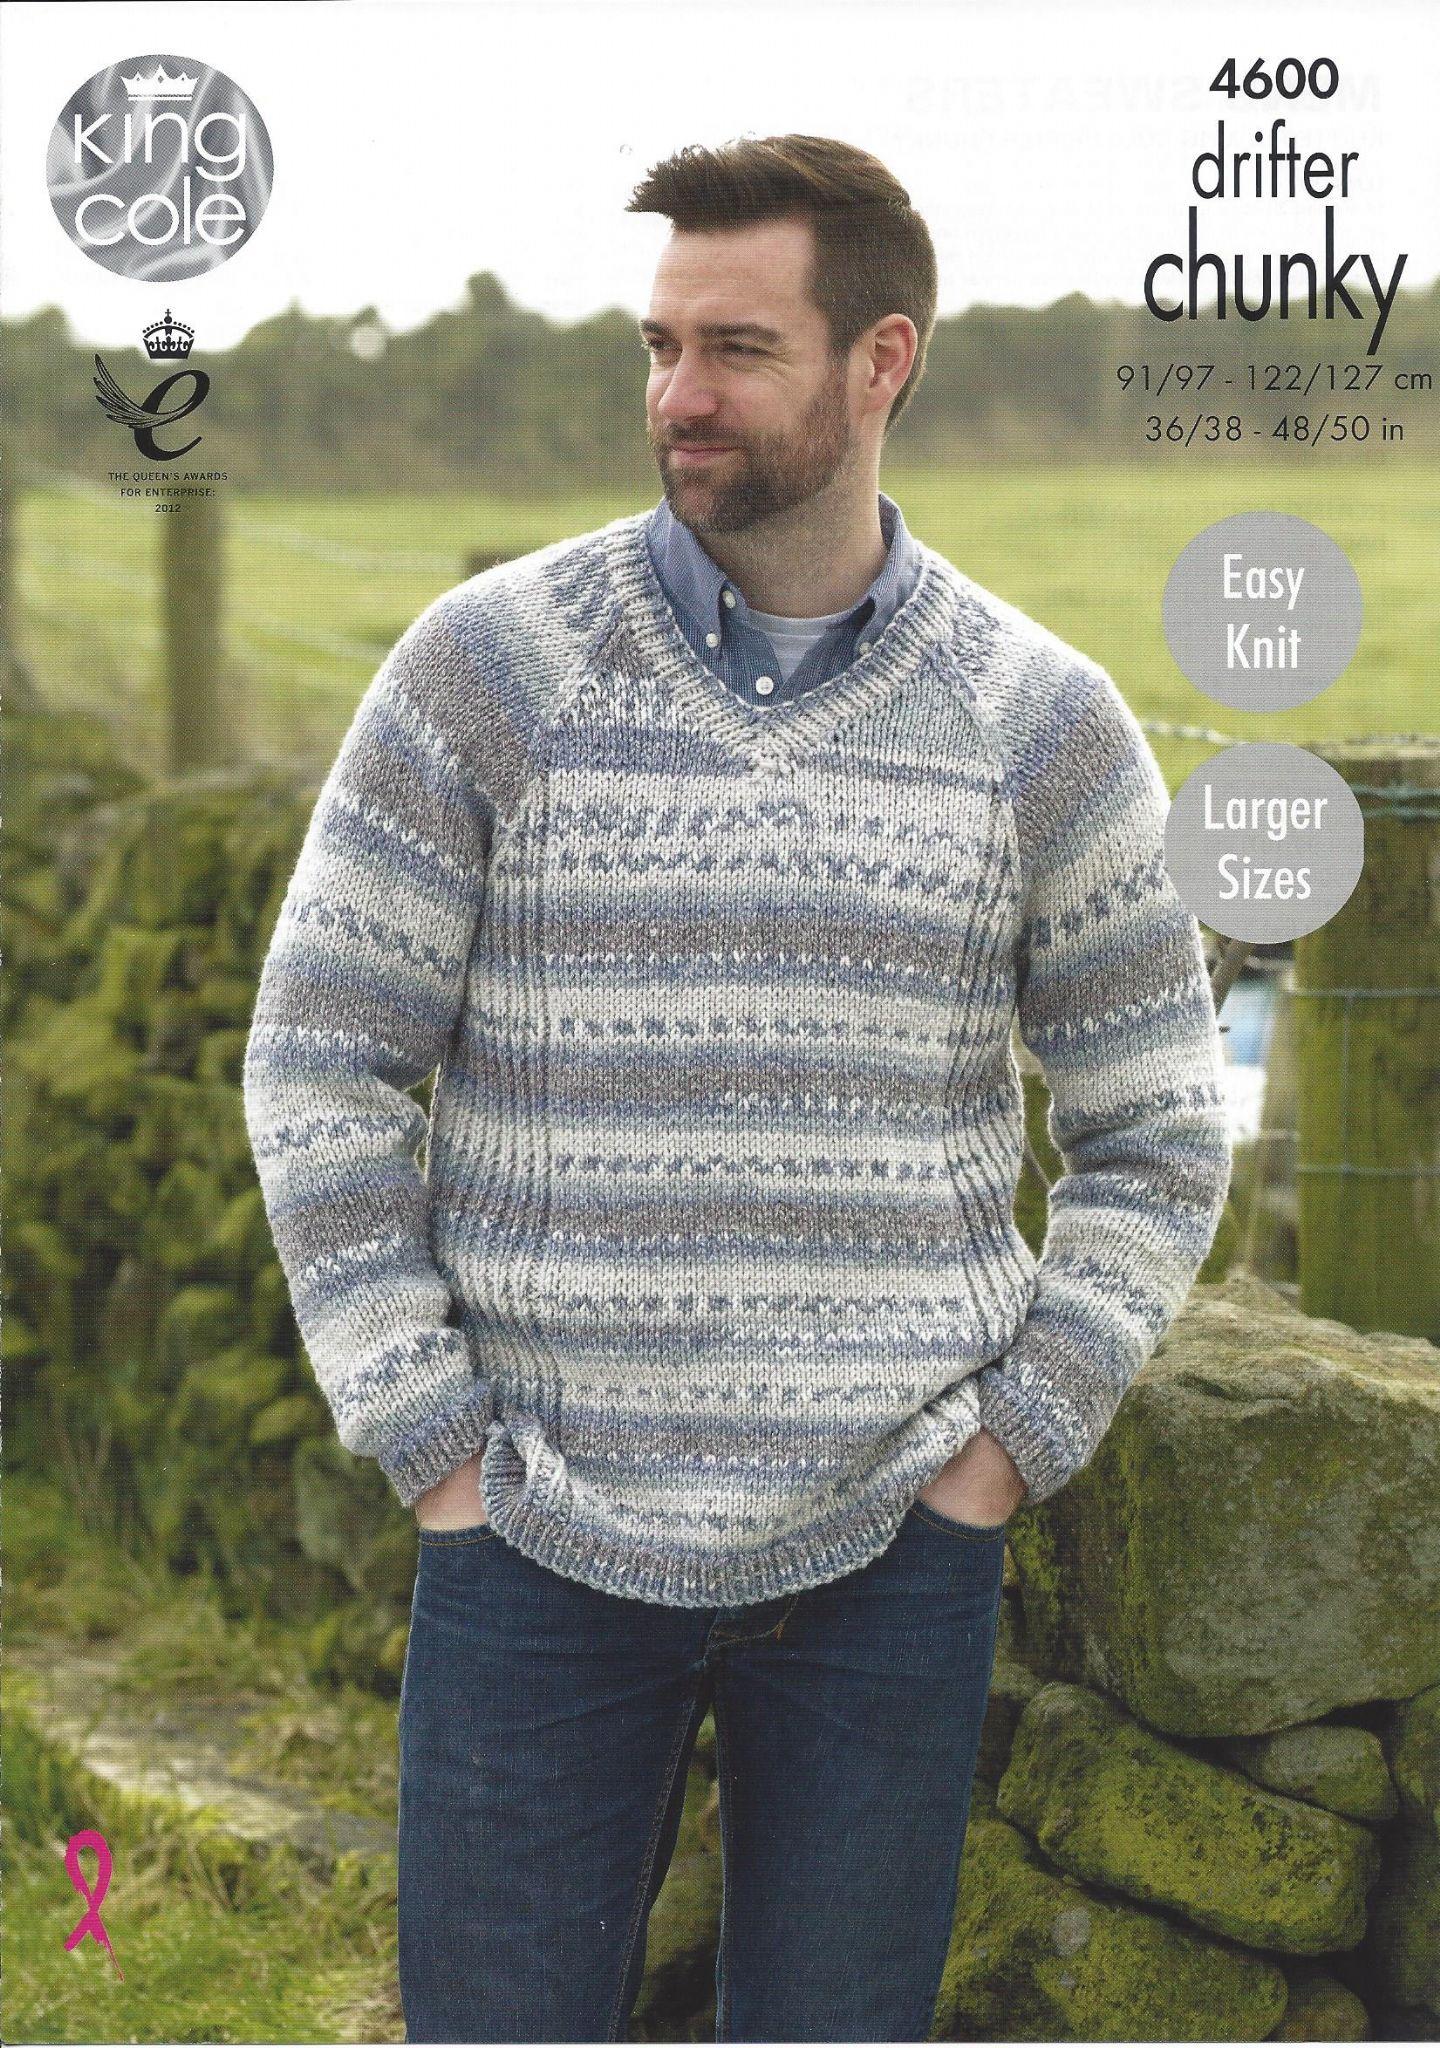 King Cole Drifter Chunky - 4600 Mens Sweaters Knitting Pattern